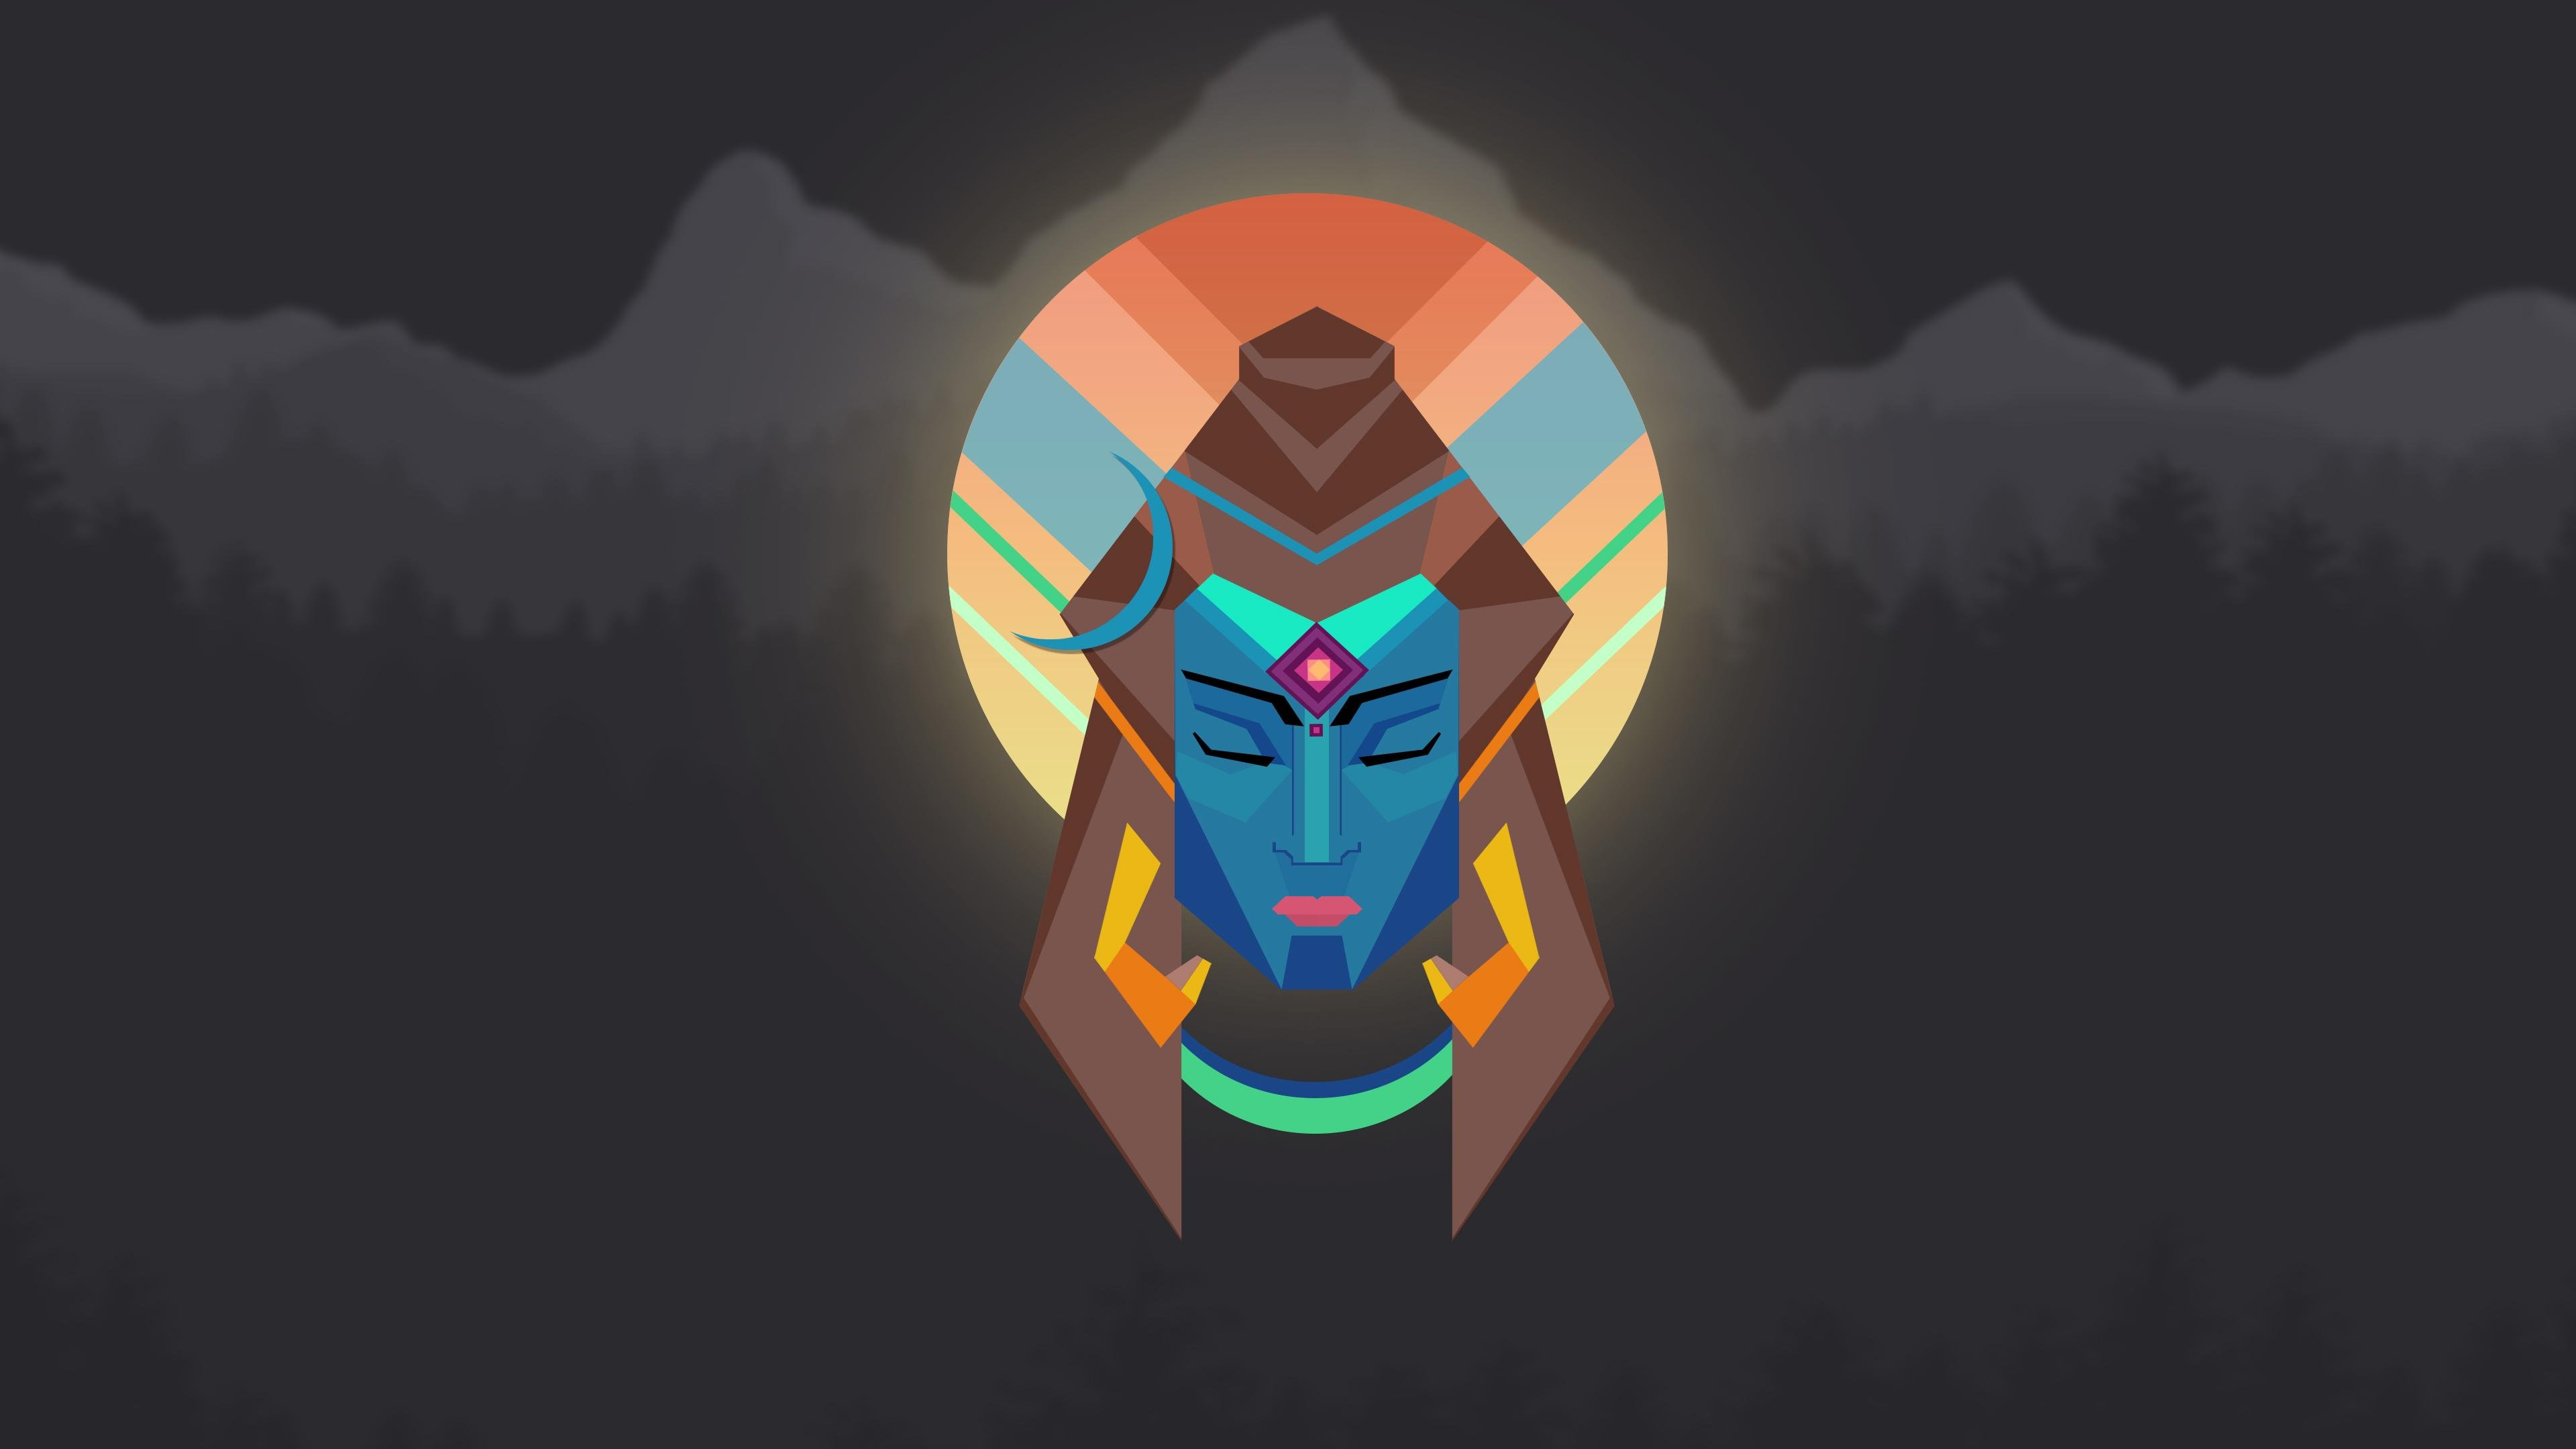 lord shiva minimal  oc wallpaper